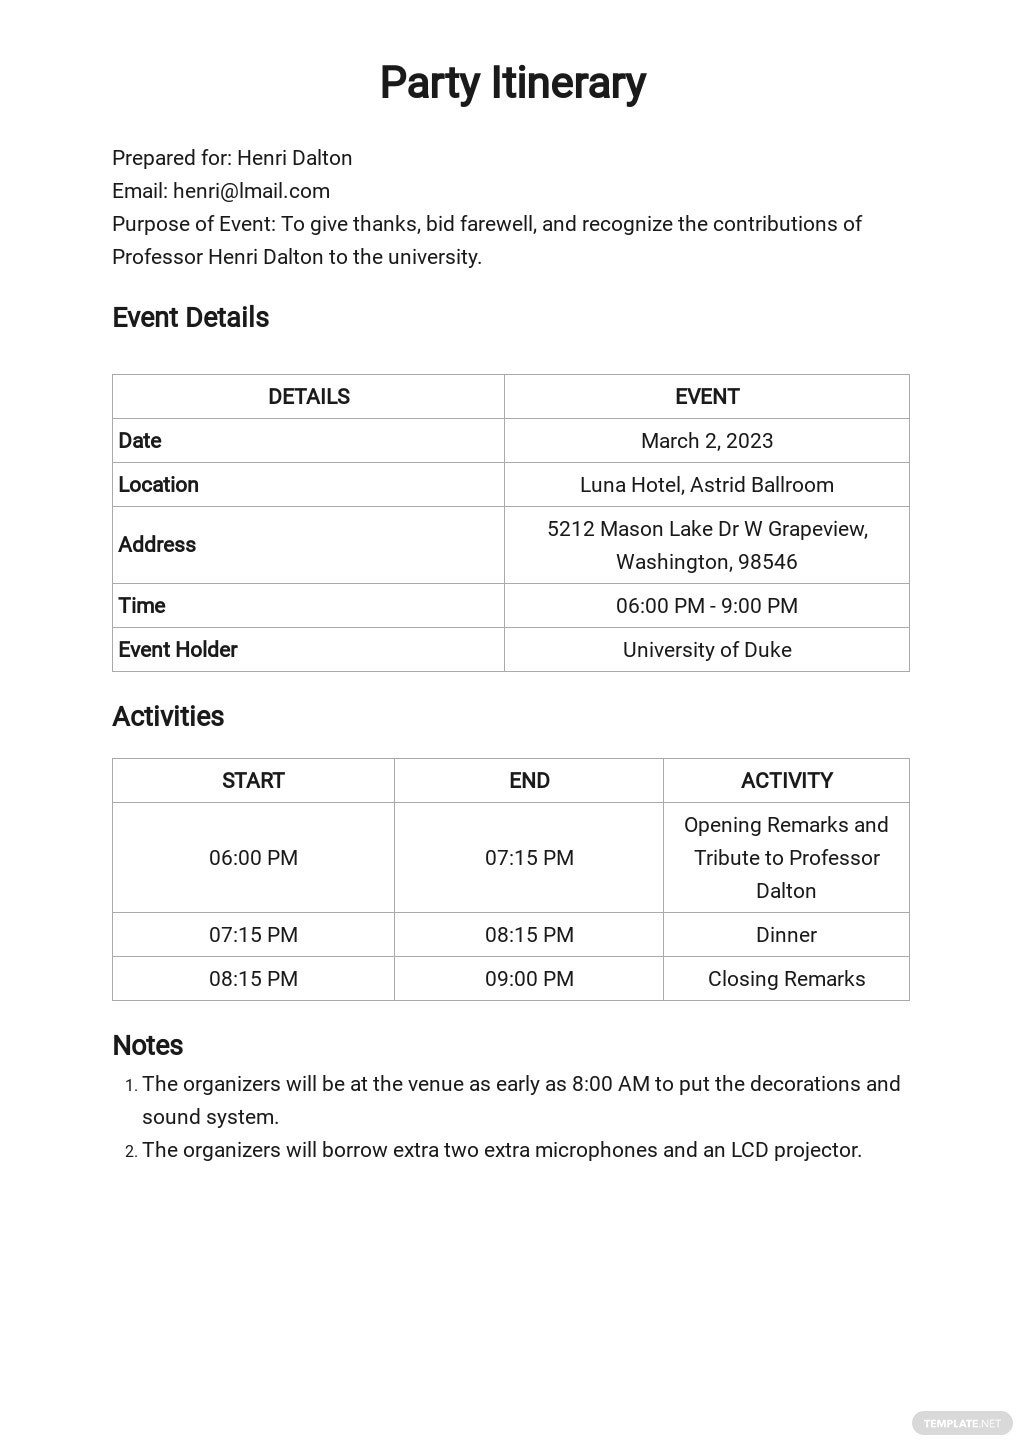 Party Itinerary Template